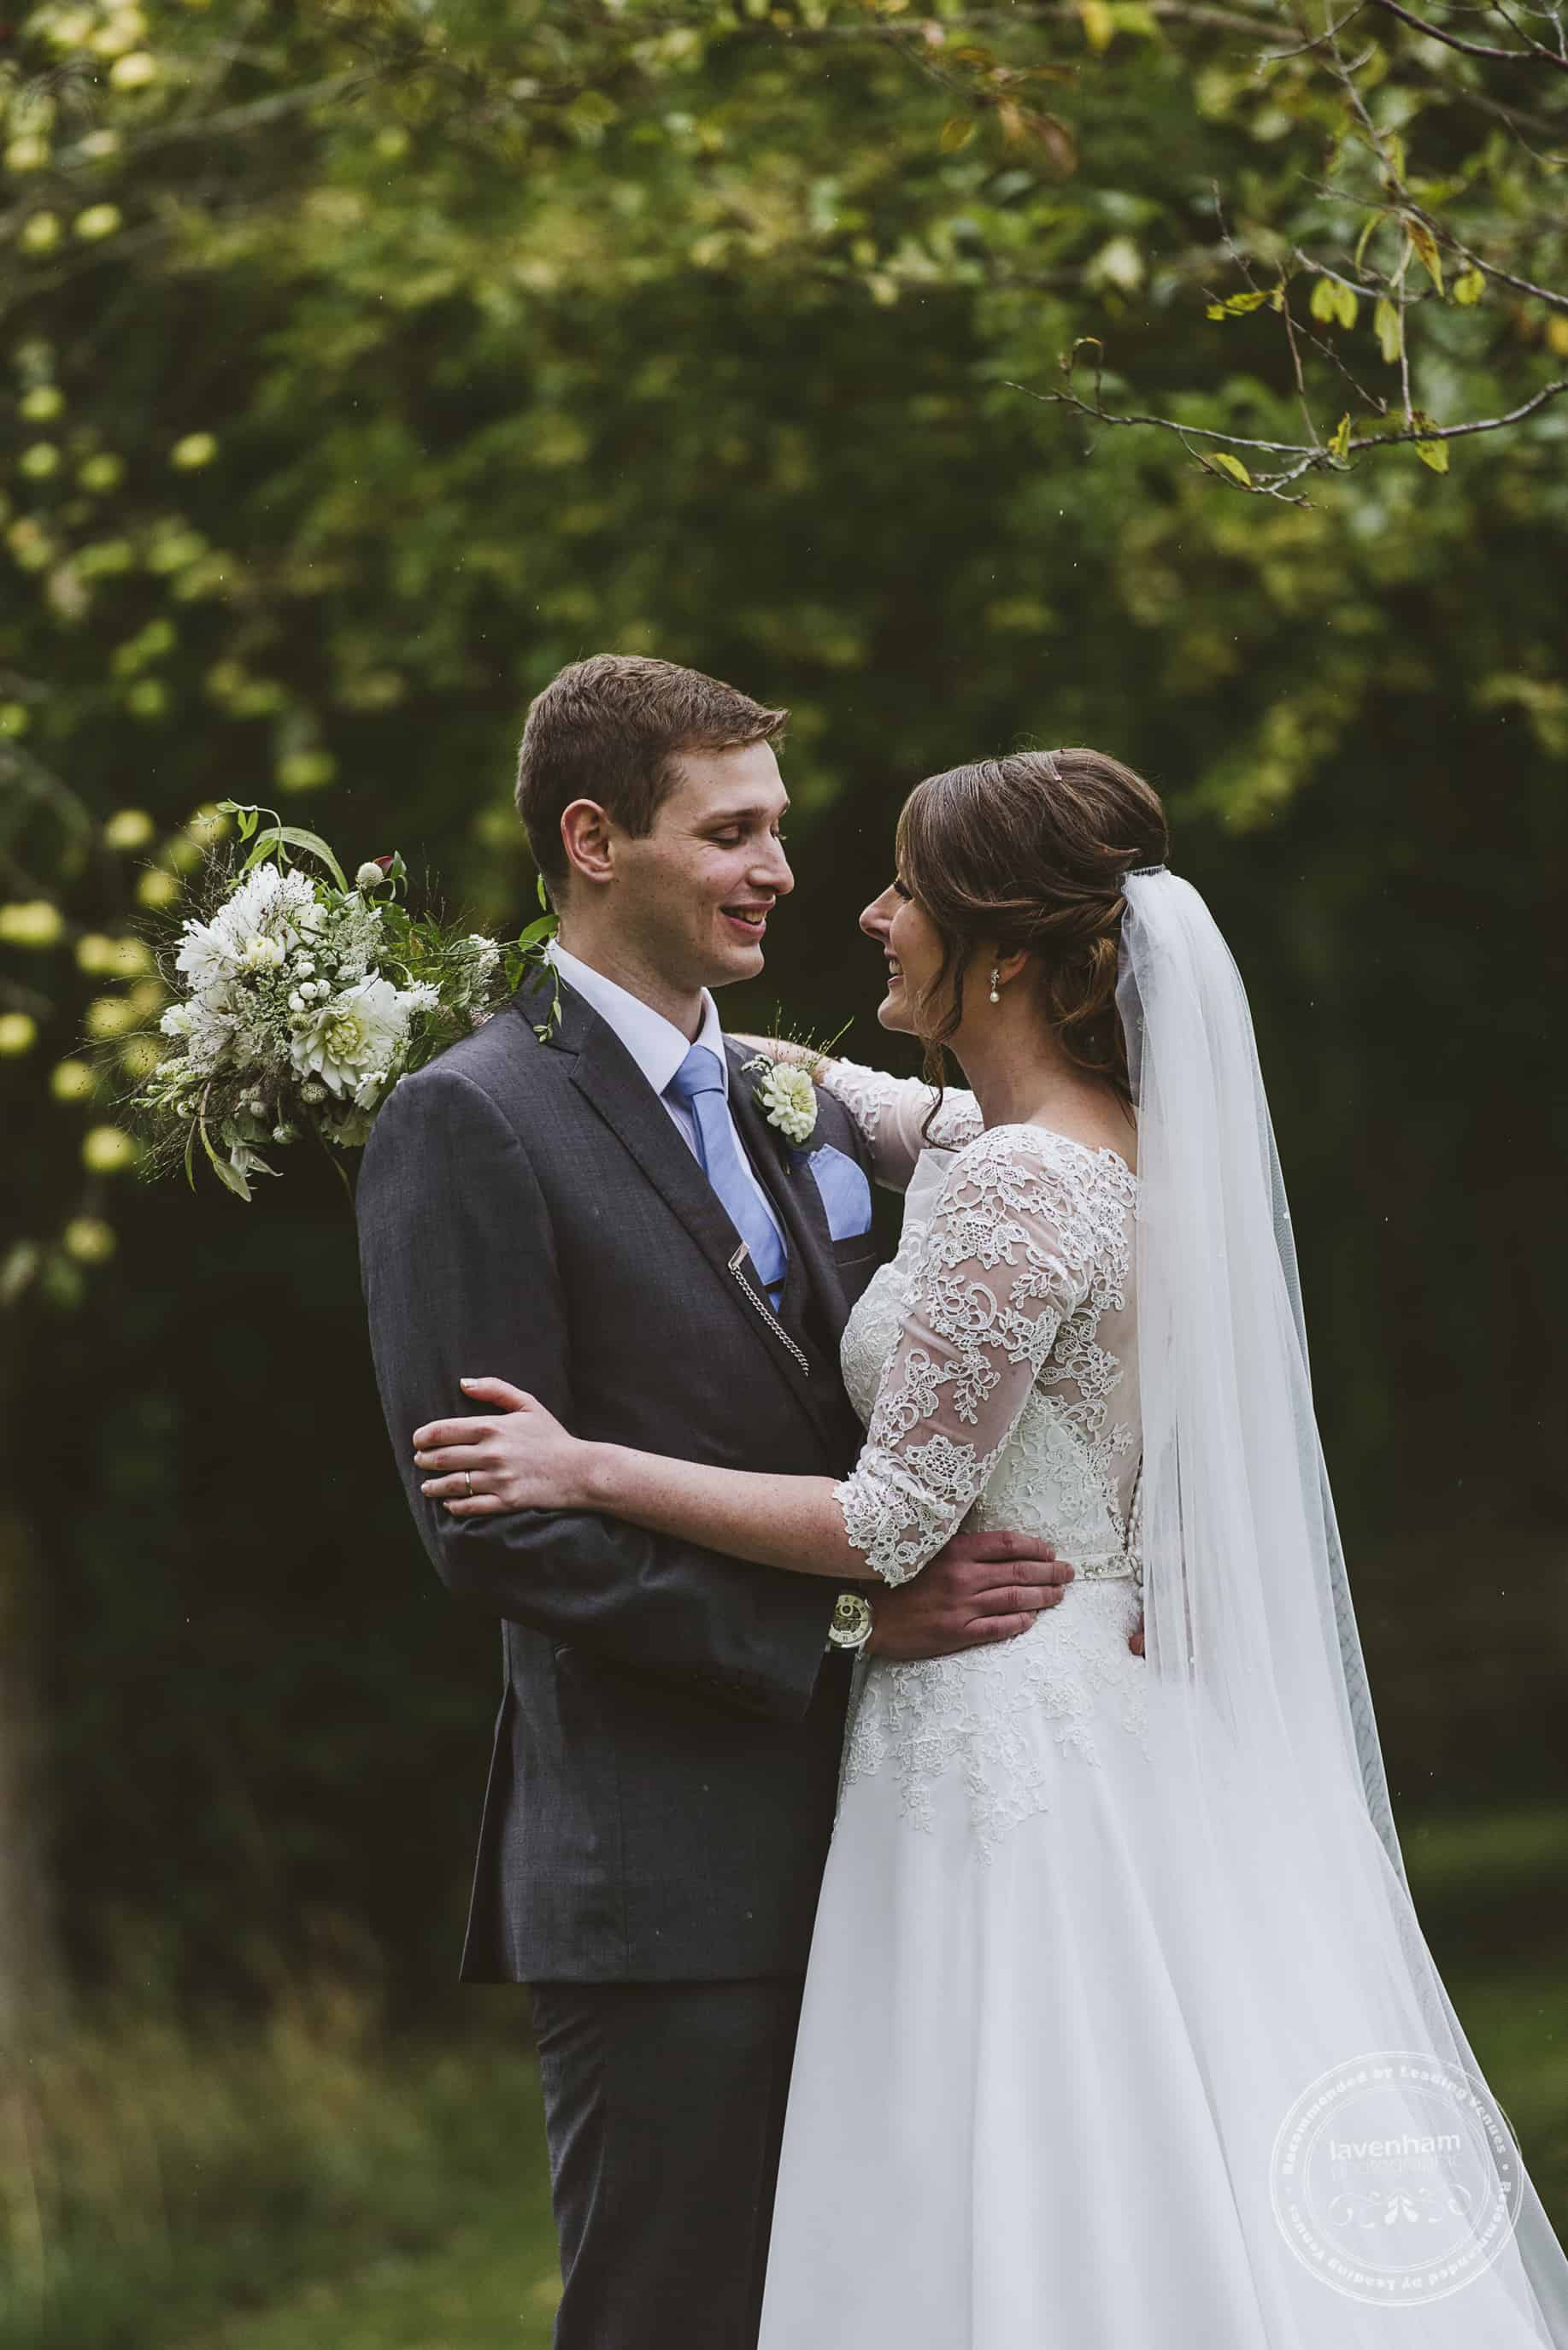 220918 Alpheton Barn Wedding Photography by Lavenham Photographic 103